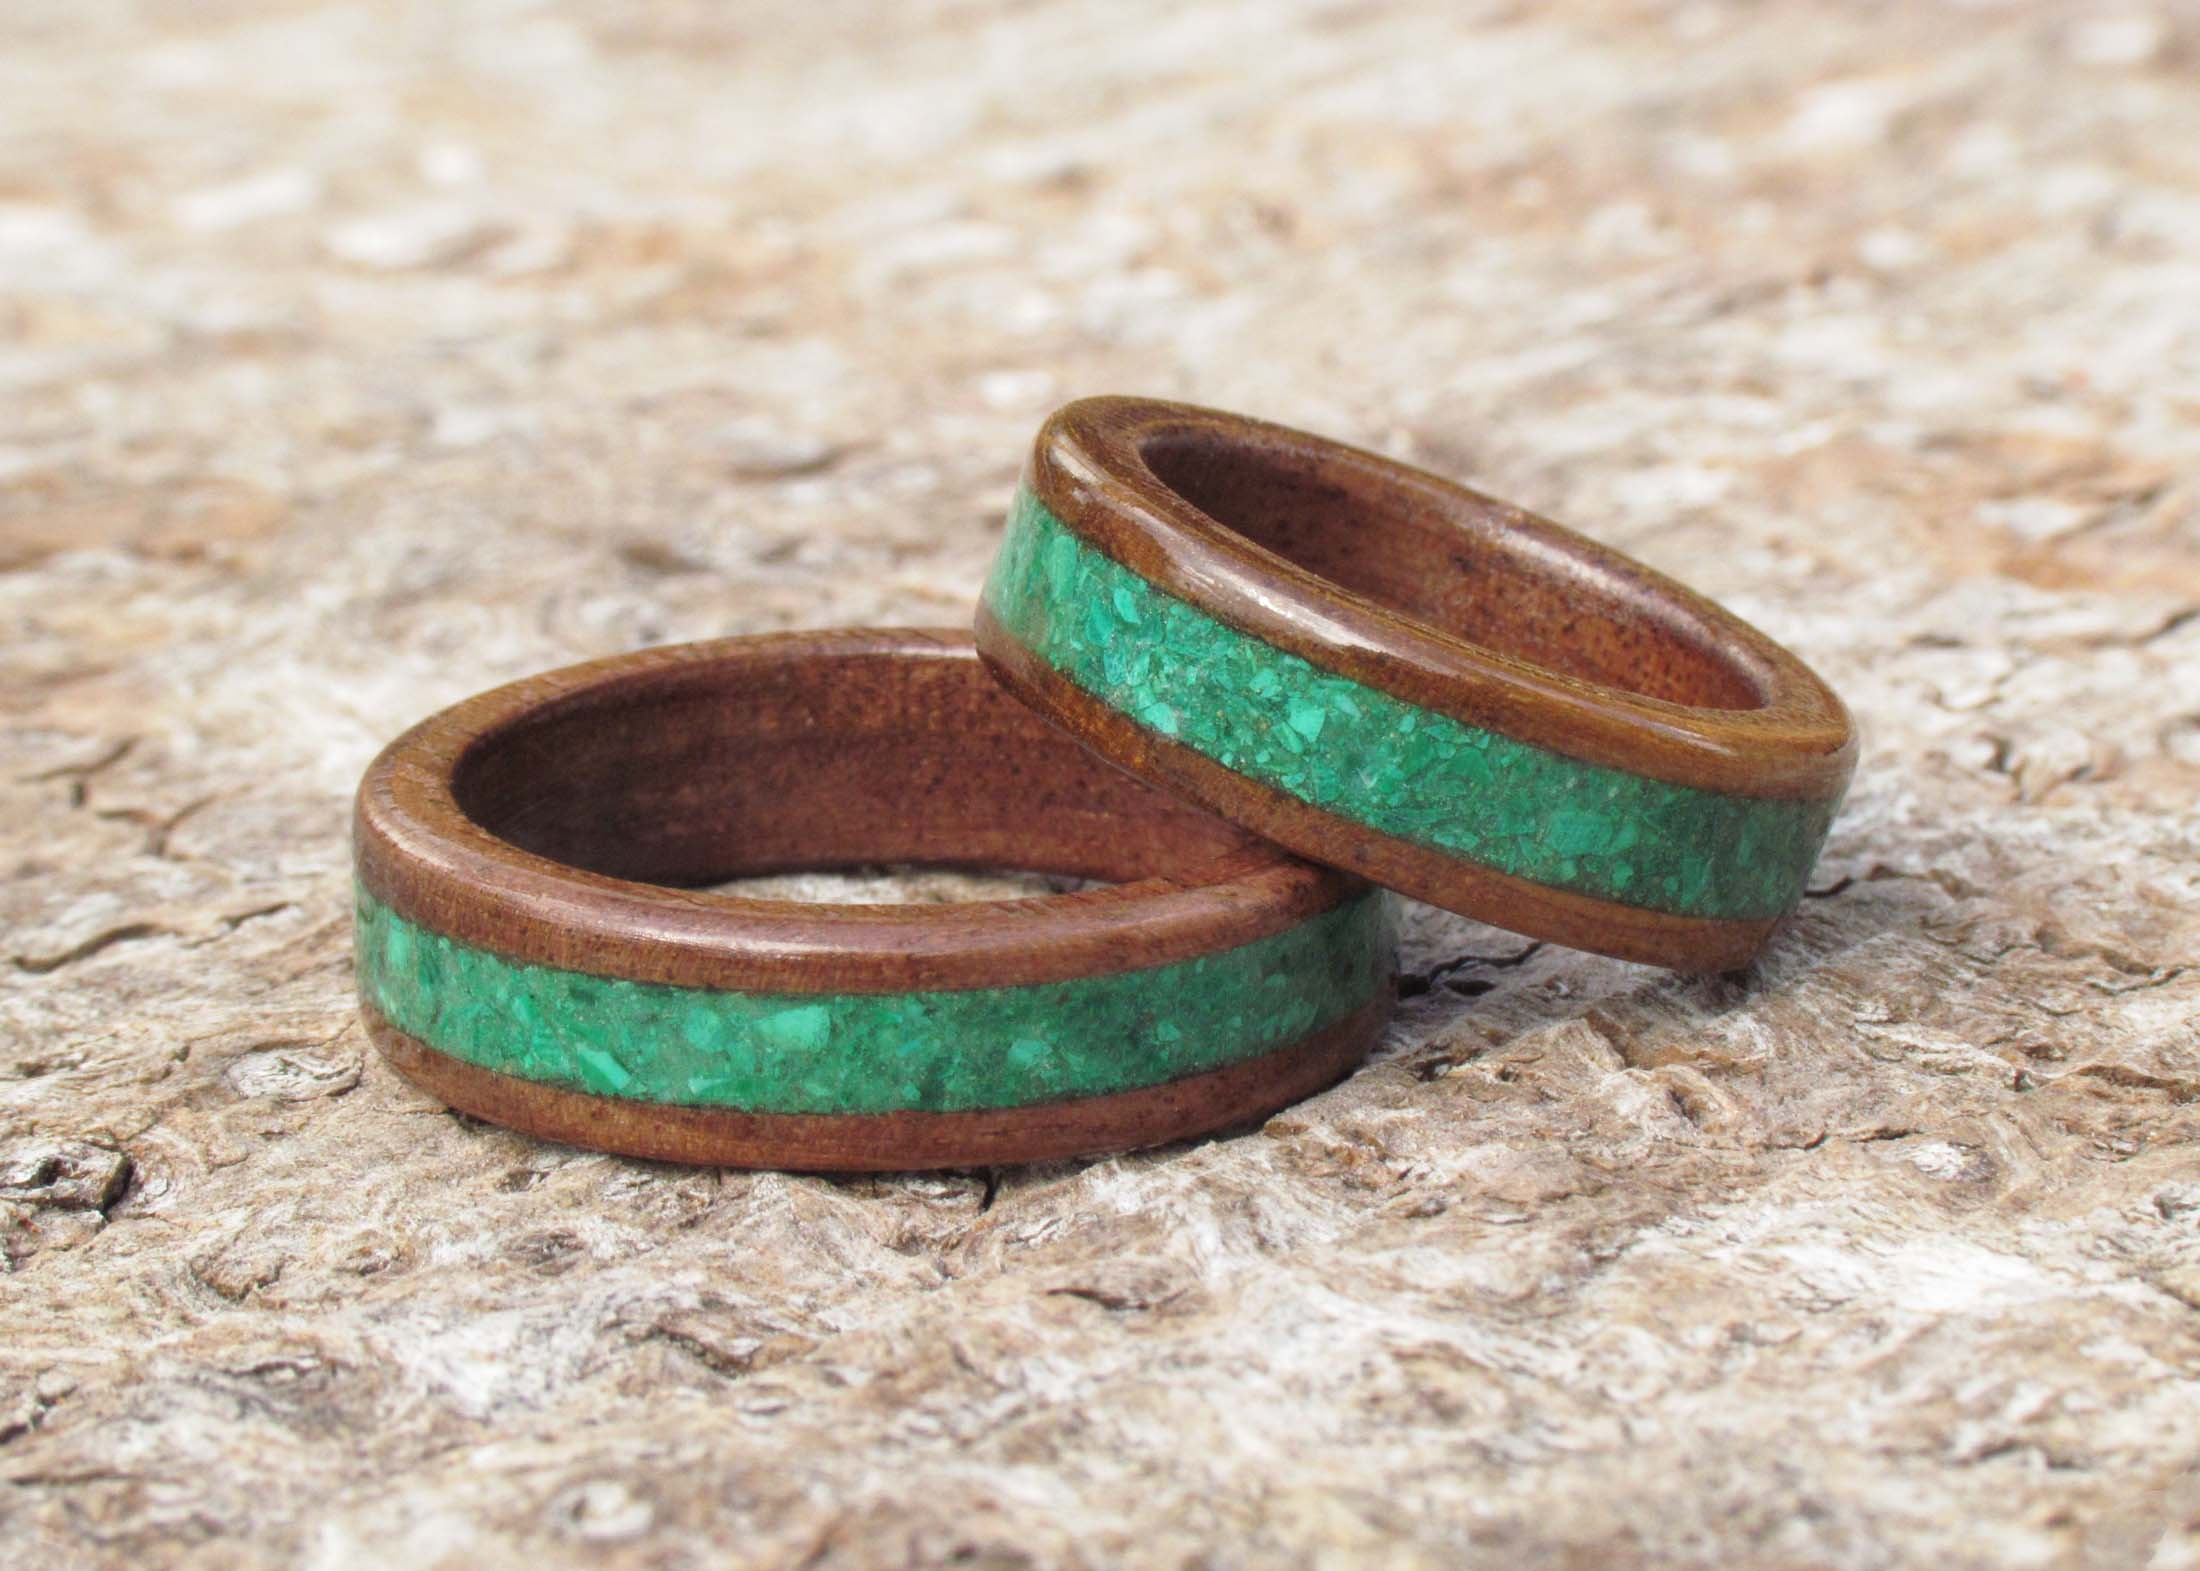 Wooden Wedding Ring Sets - We are able to make custom wooden wedding rings from the same section of wood and gemstone adding continuity to your design and a sense of unity.